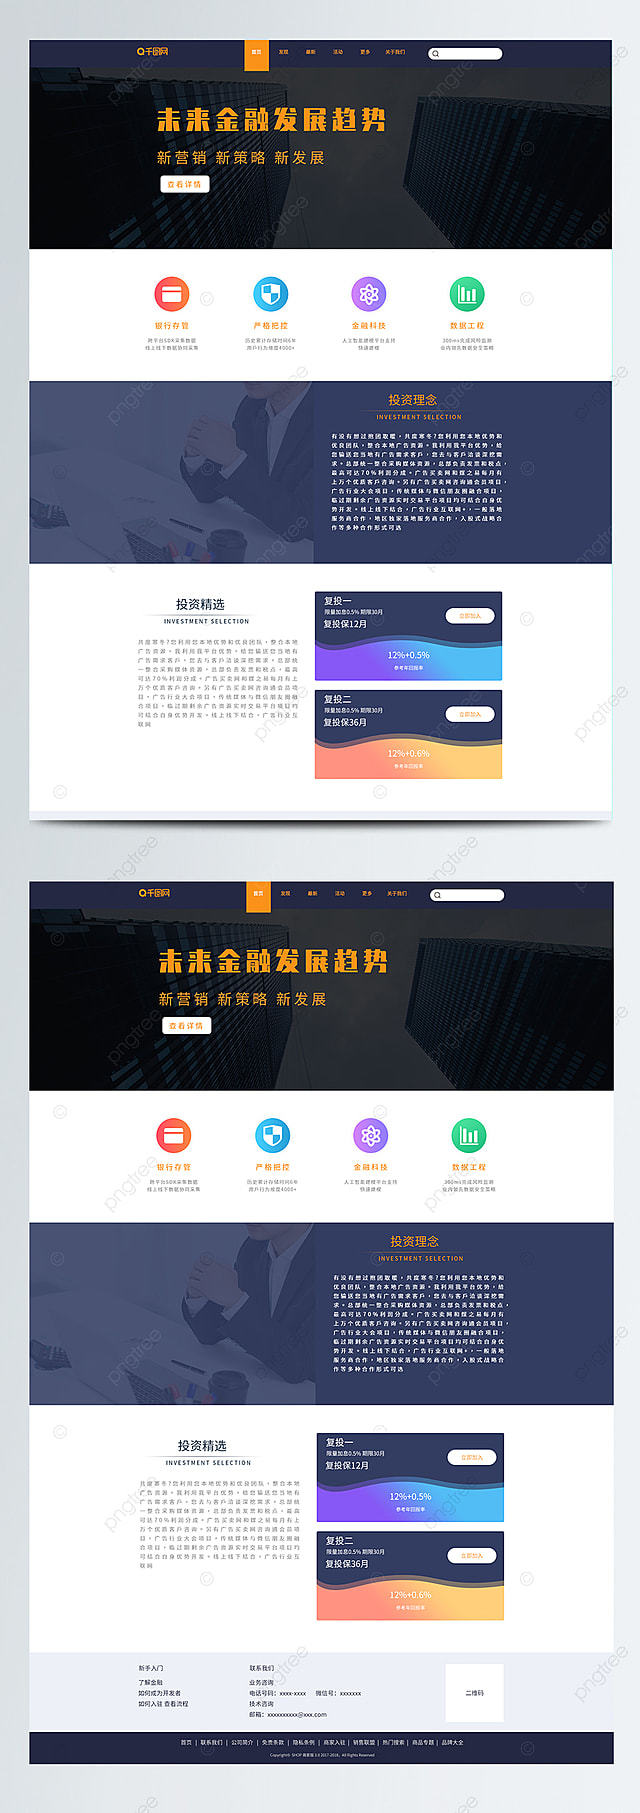 Business Web Design Template Material Download Business Web Design Template Template Download Business Web Design Template Business Template For Free Download On Pngtree